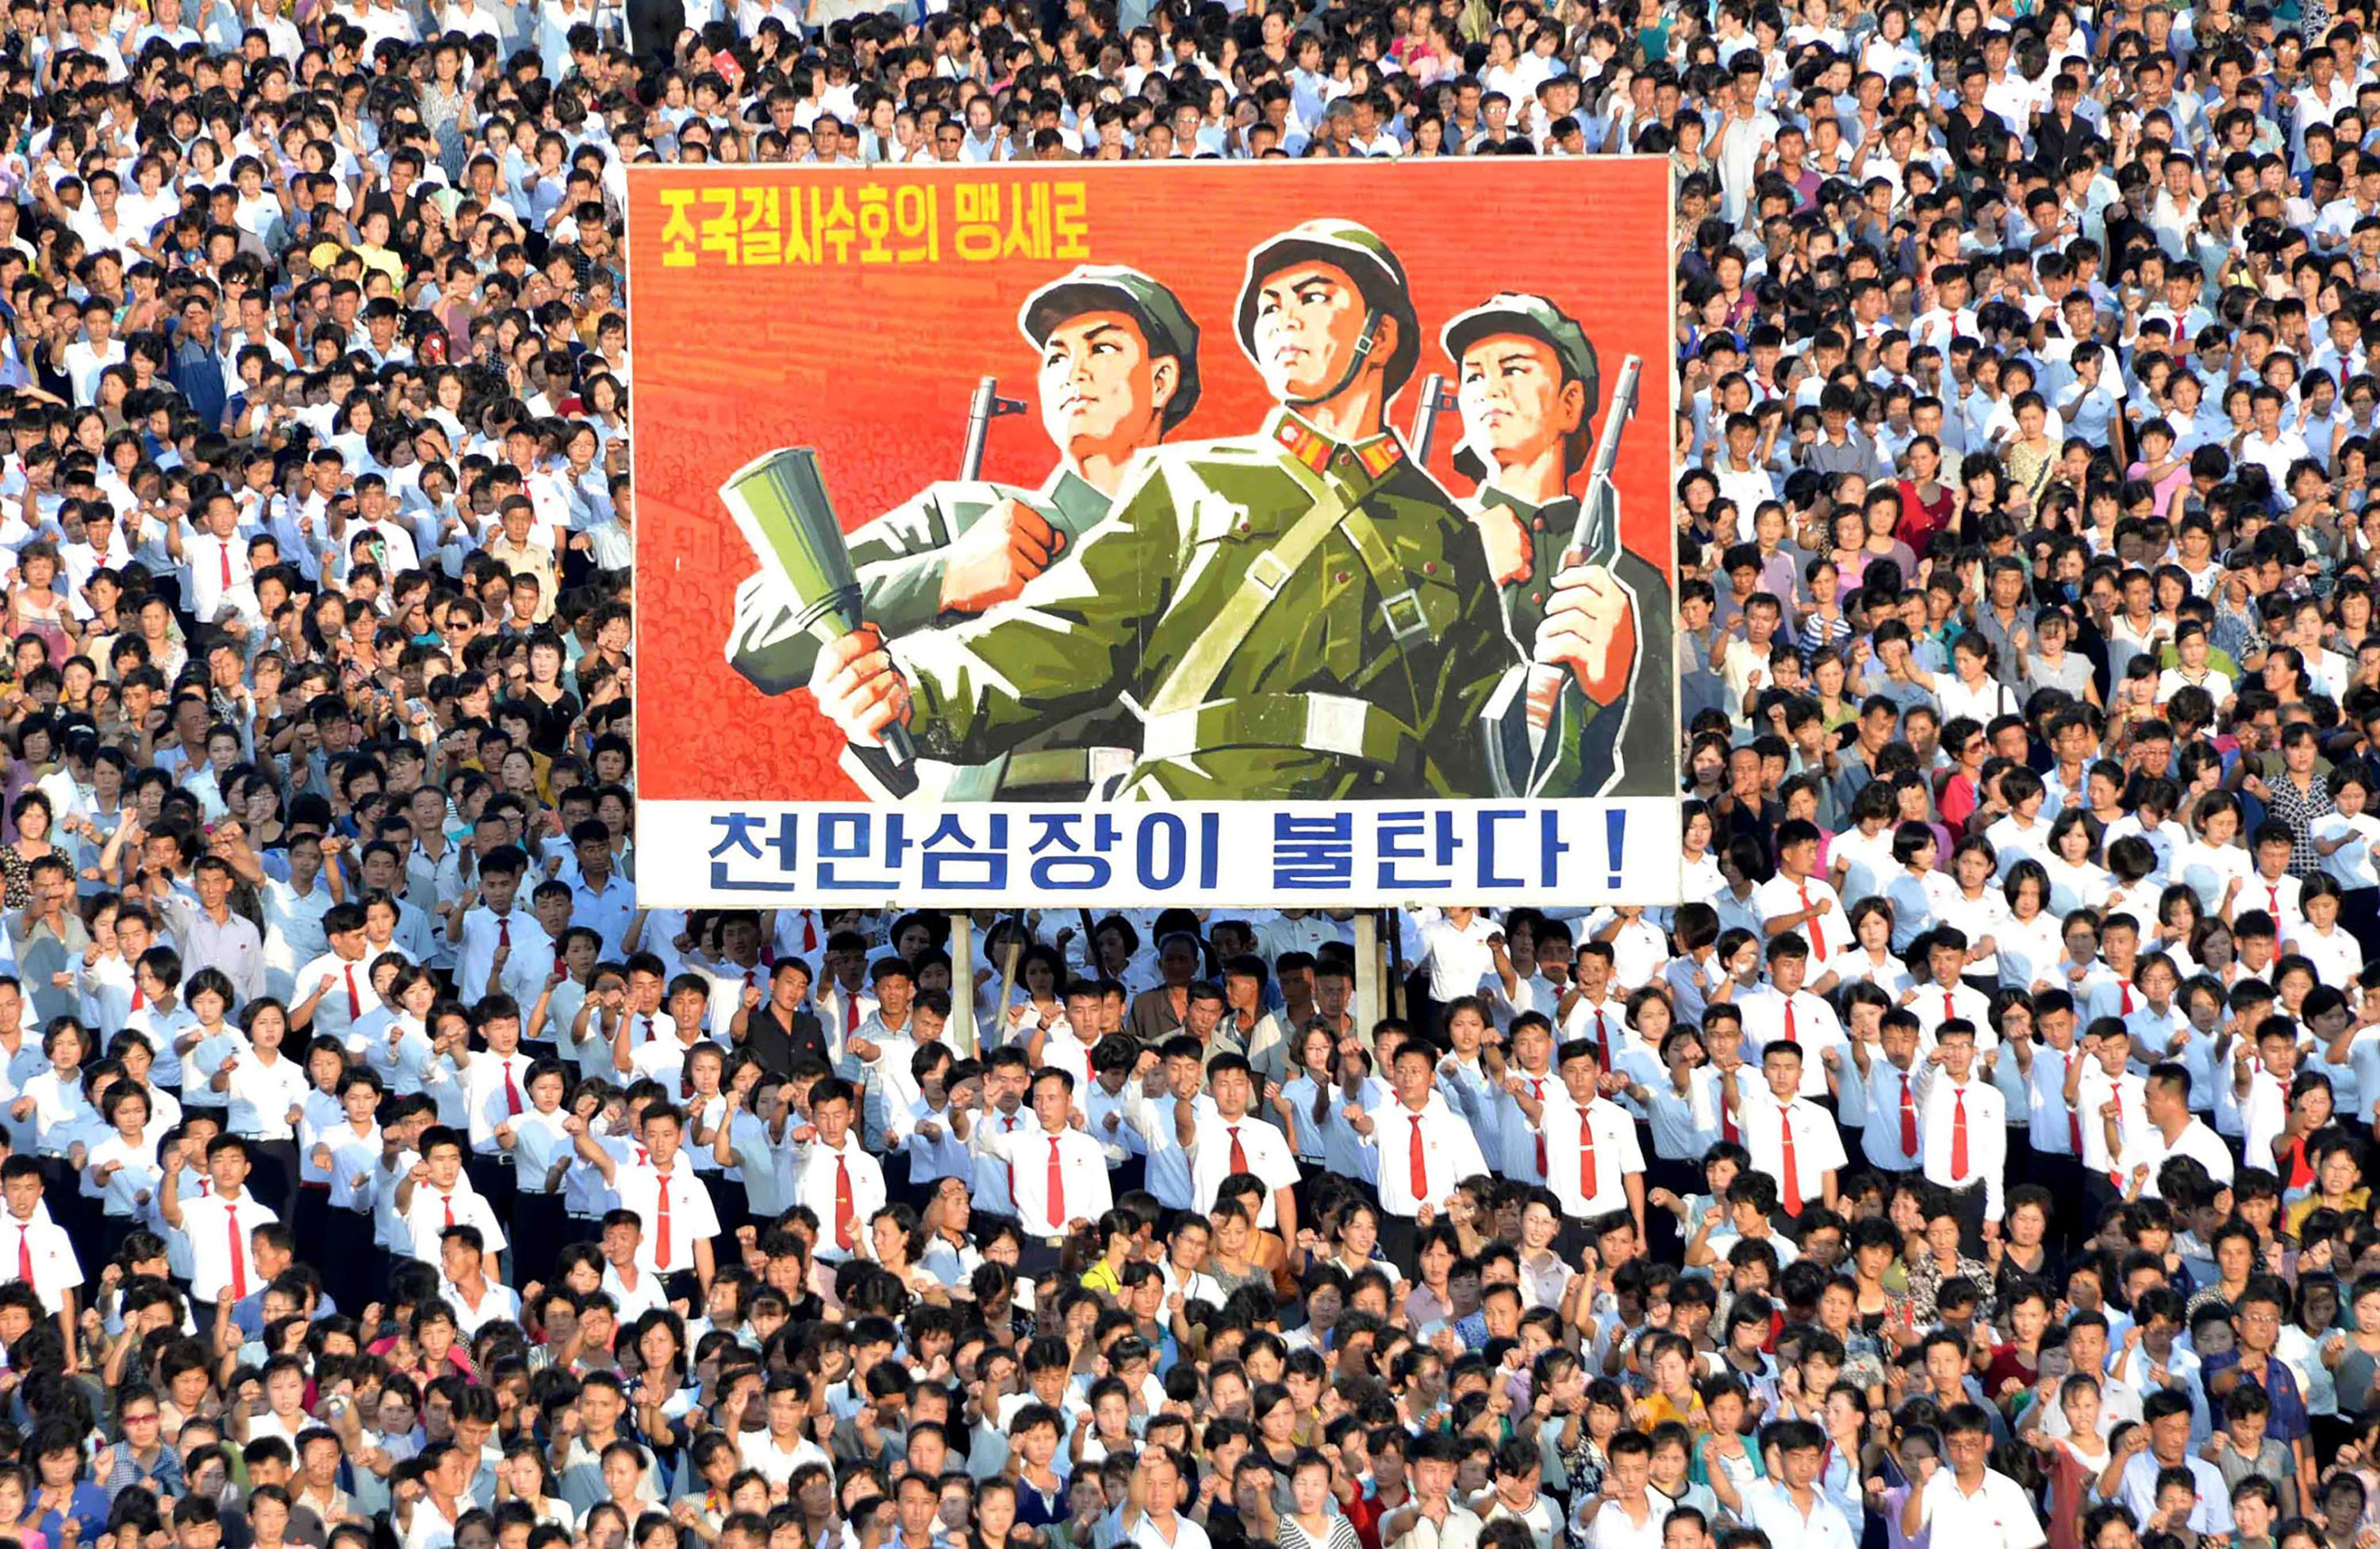 This picture taken on Aug. 9, 2017 and released by North Korea's official Korean Central News Agency (KCNA) on Aug. 10, 2017 shows a rally in support of North Korea's stance against the U.S., on Kim Il-Sung square in Pyongyang.